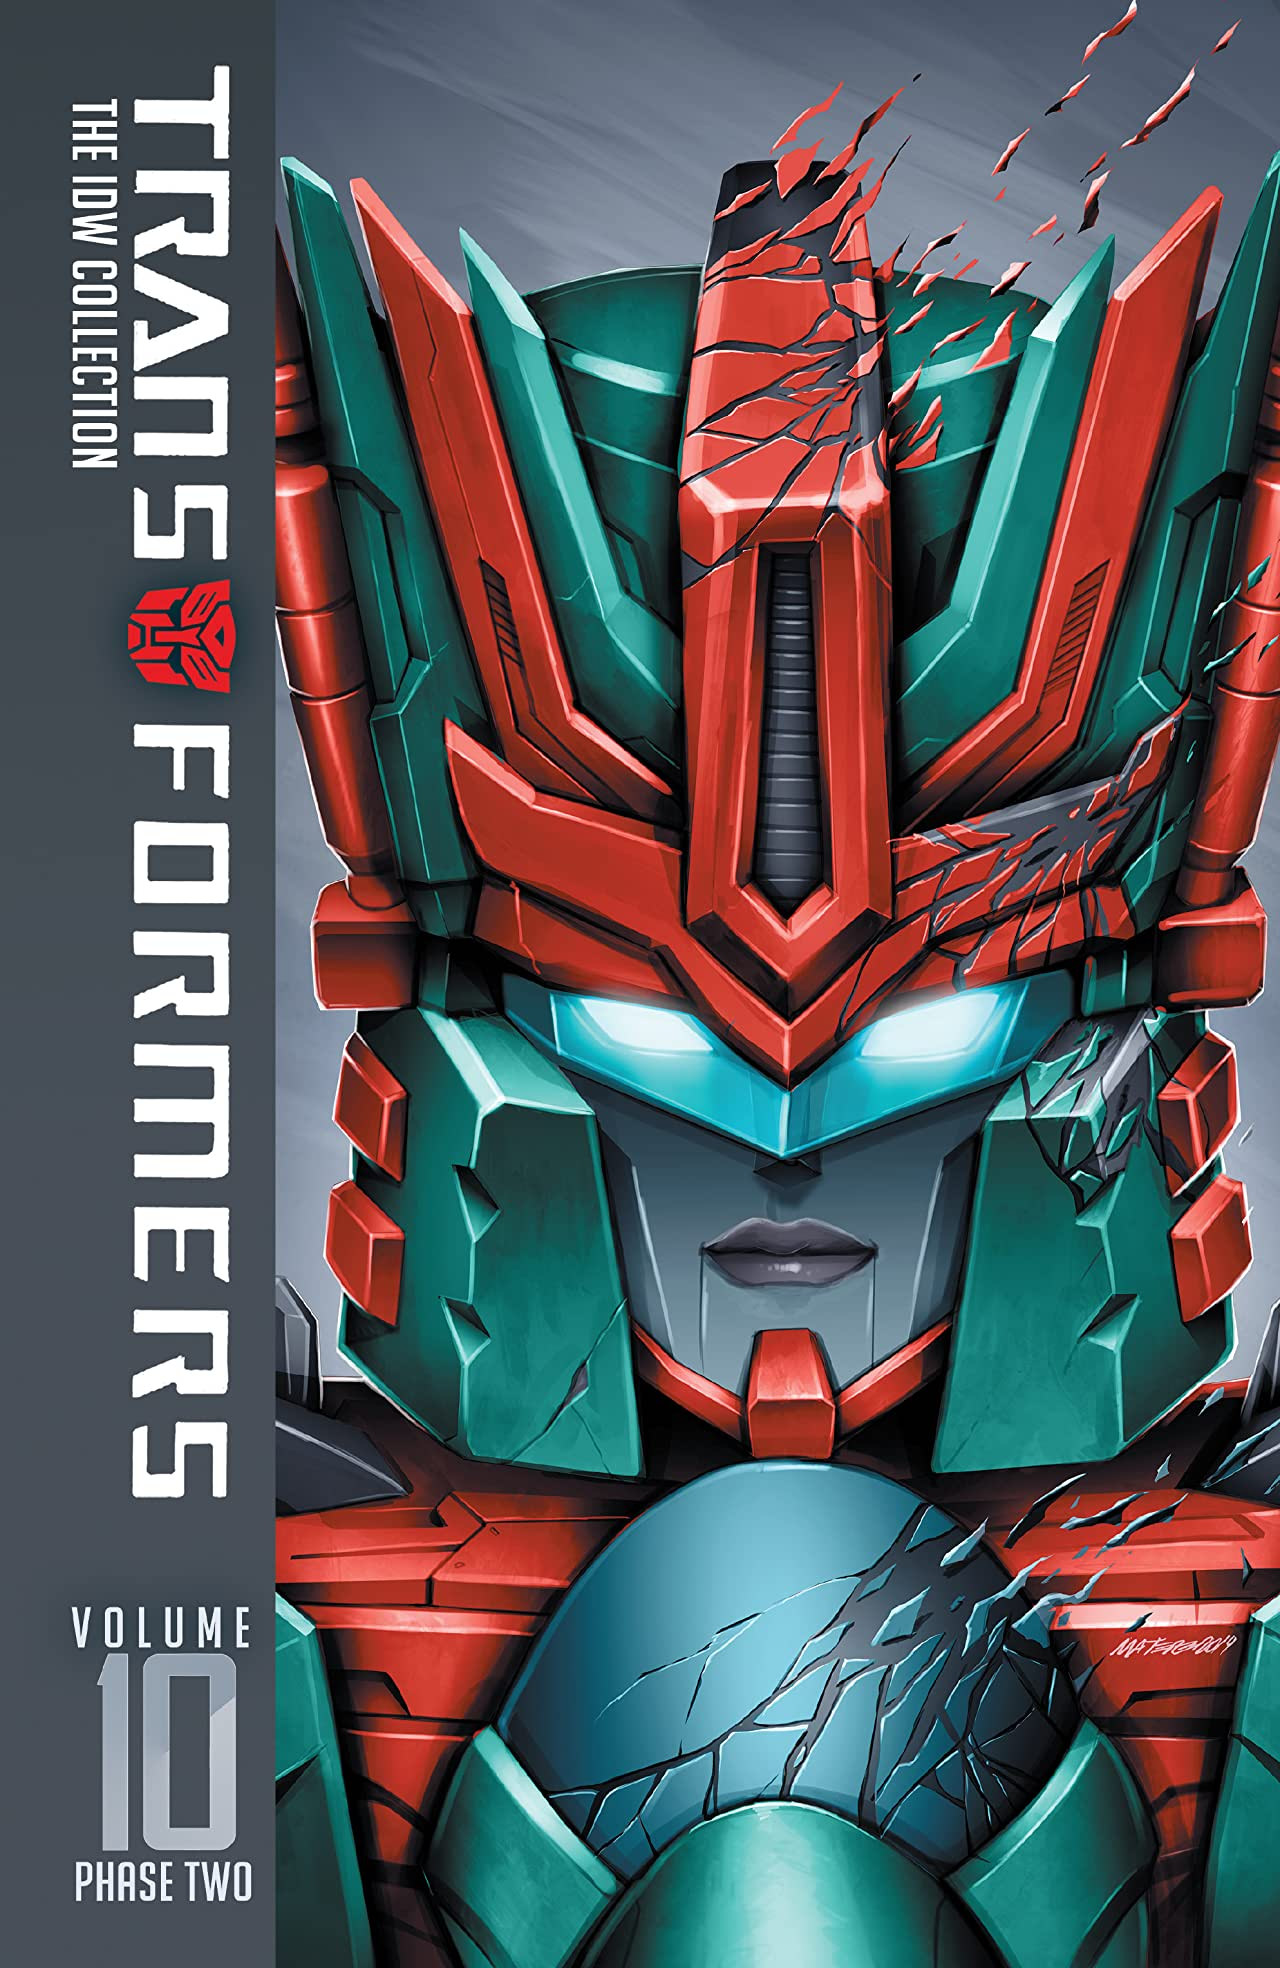 Transformers: IDW Collection - Phase Two Vol. 10